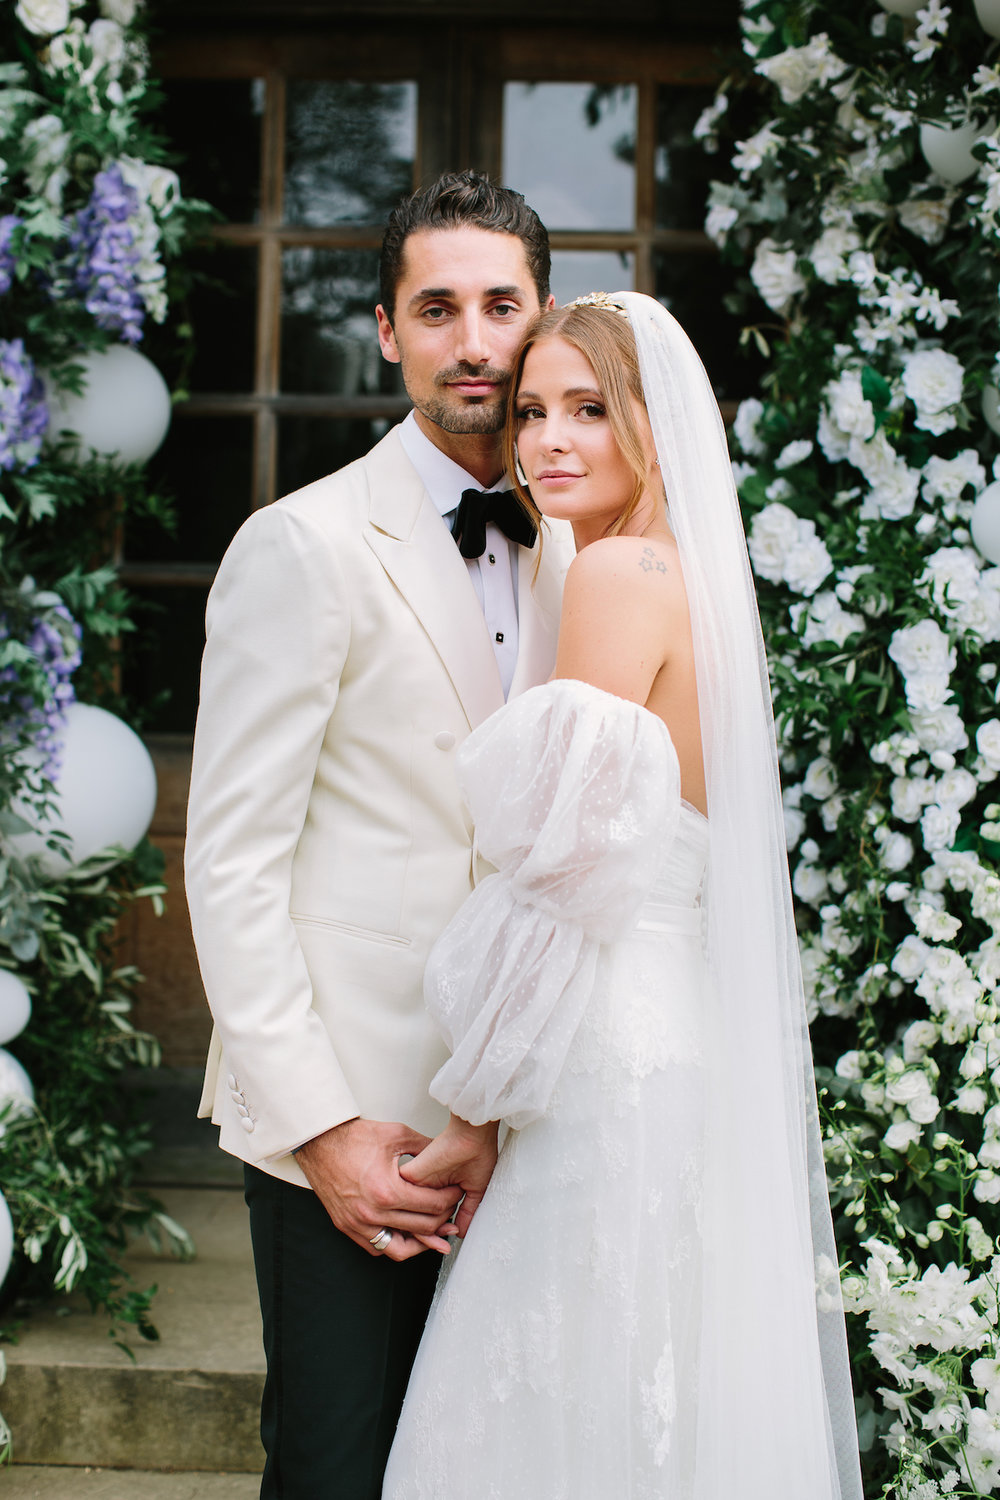 Millie Mackintosh wore a bespoke crown by Tilly Thomas Lux on her wedding day